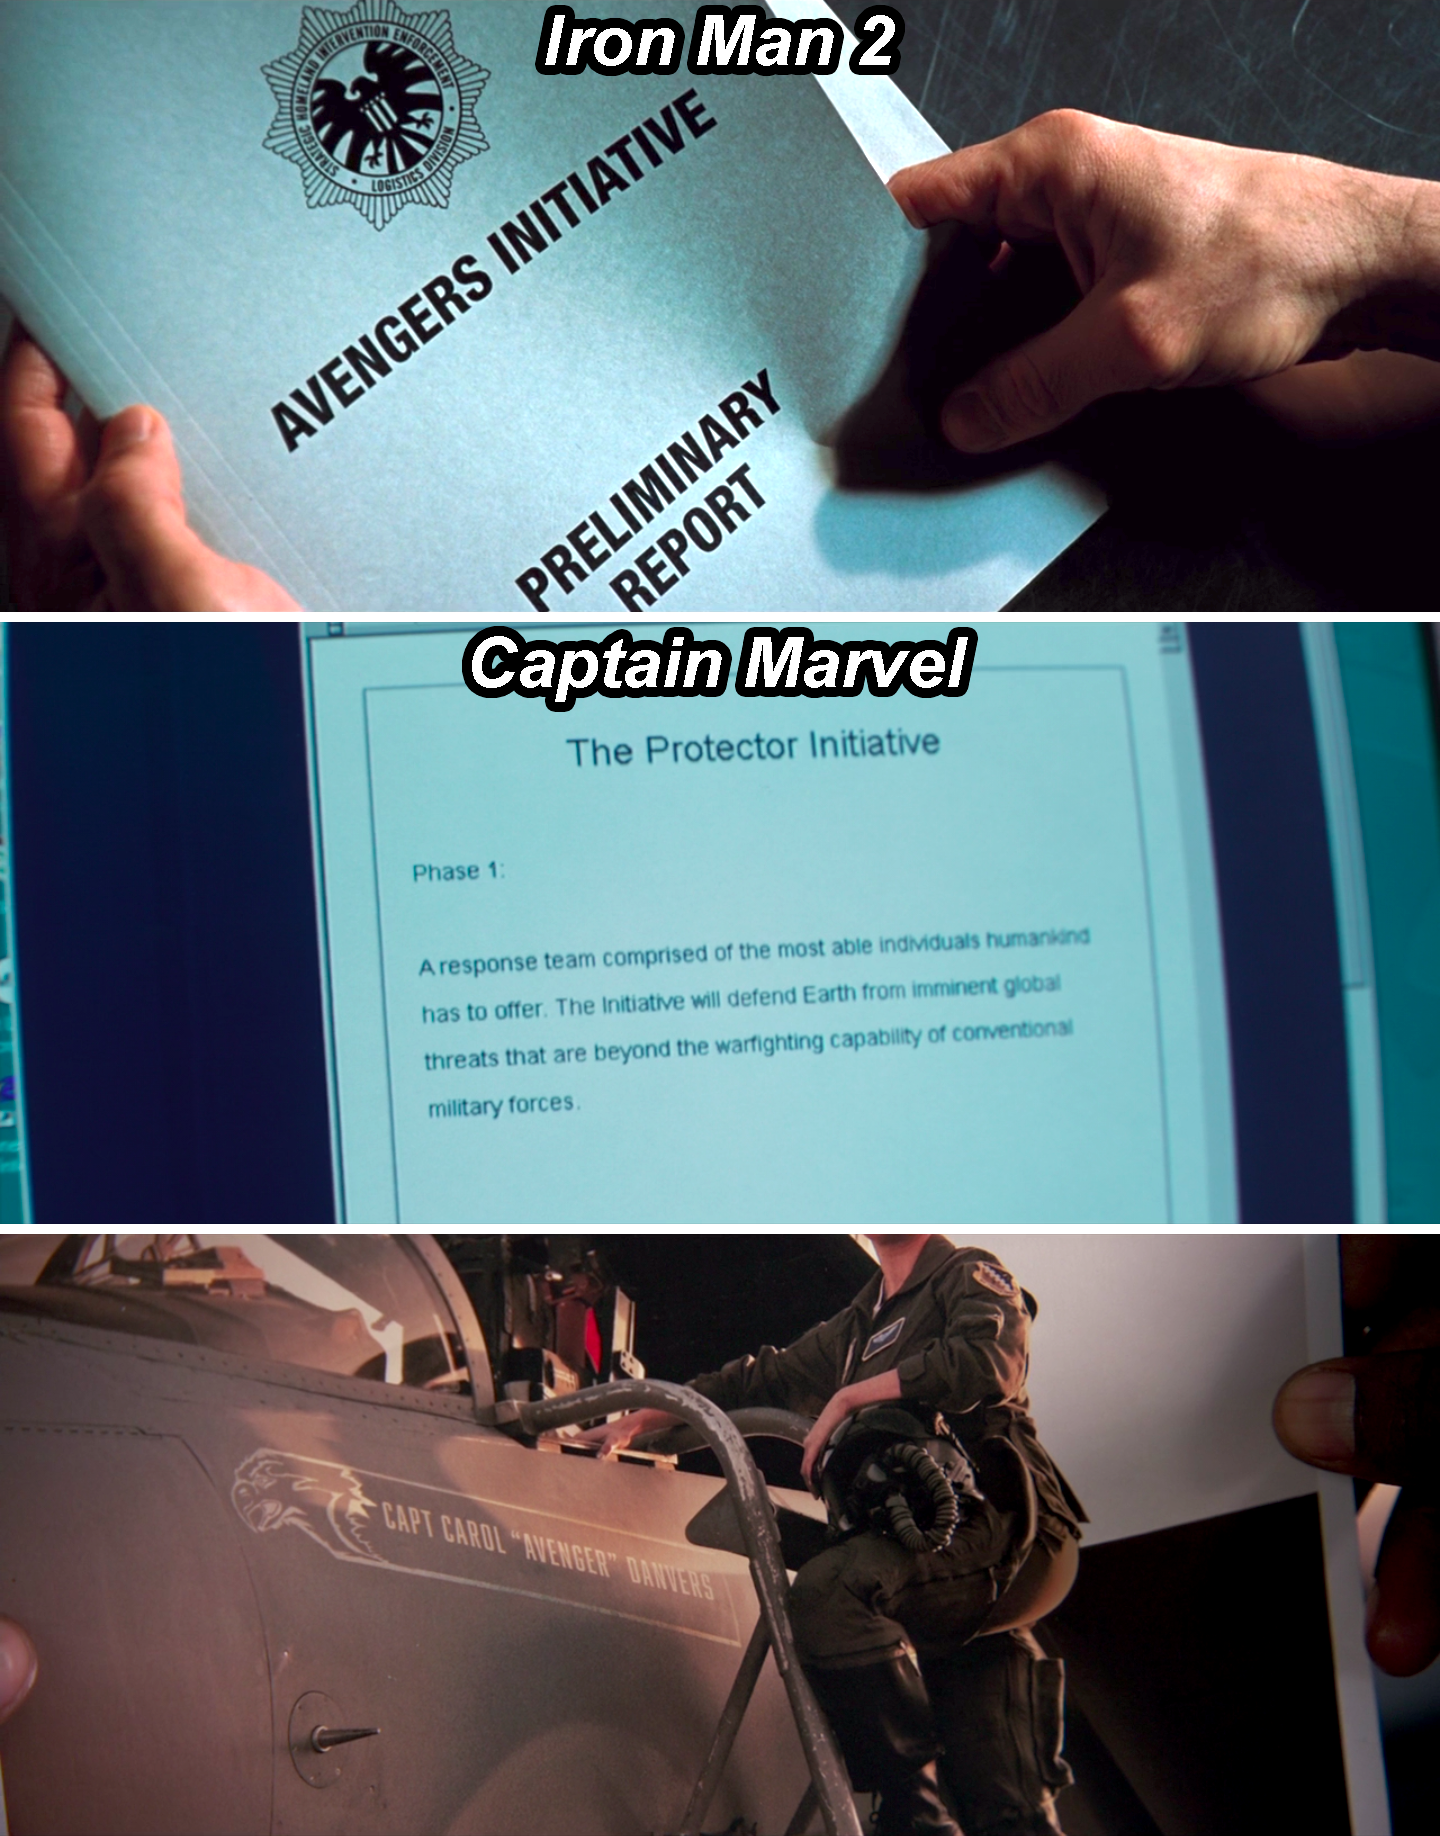 A folder in Iron Man 2 that says The Avengers Initiative, a document in Captain Marvel that describes The Protector Initiative, and Carol in front of her plane that says Avenger